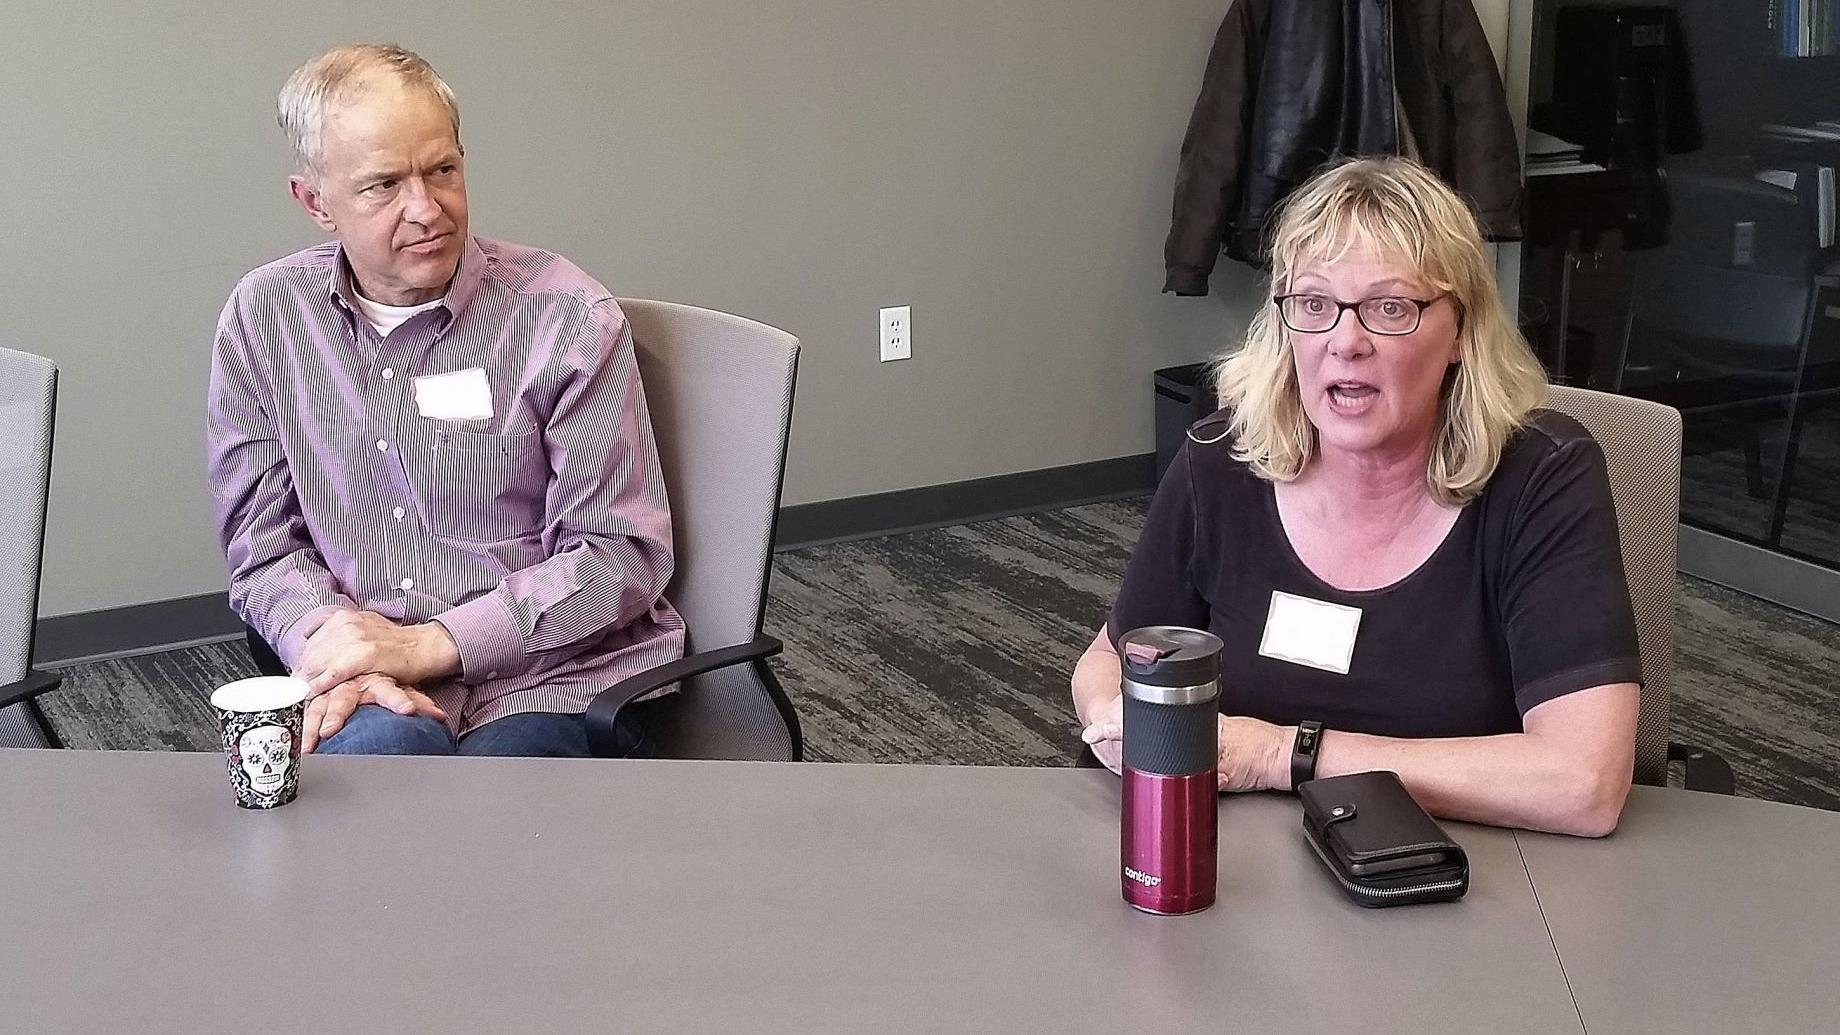 Facing mortality: New Death Cafe in Bloomington discusses taboo topic